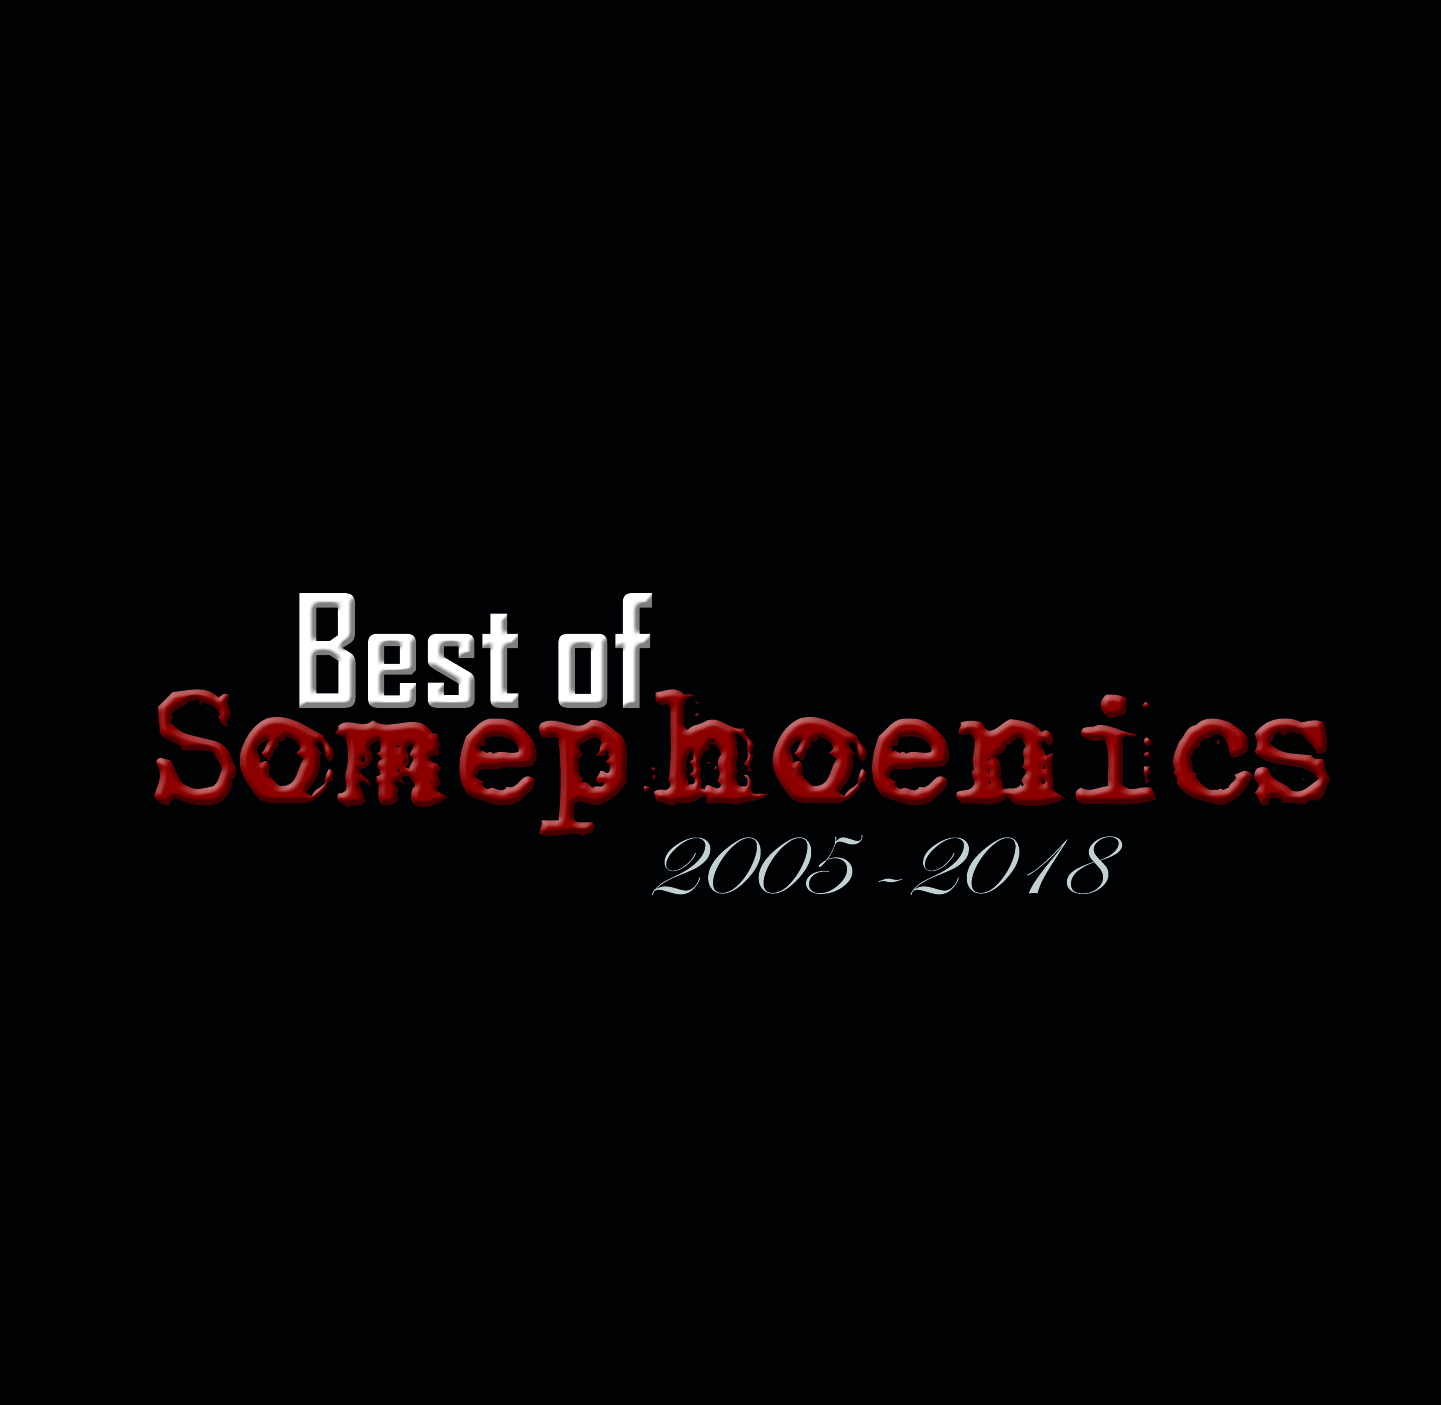 Best of Somephoenics CD Cover